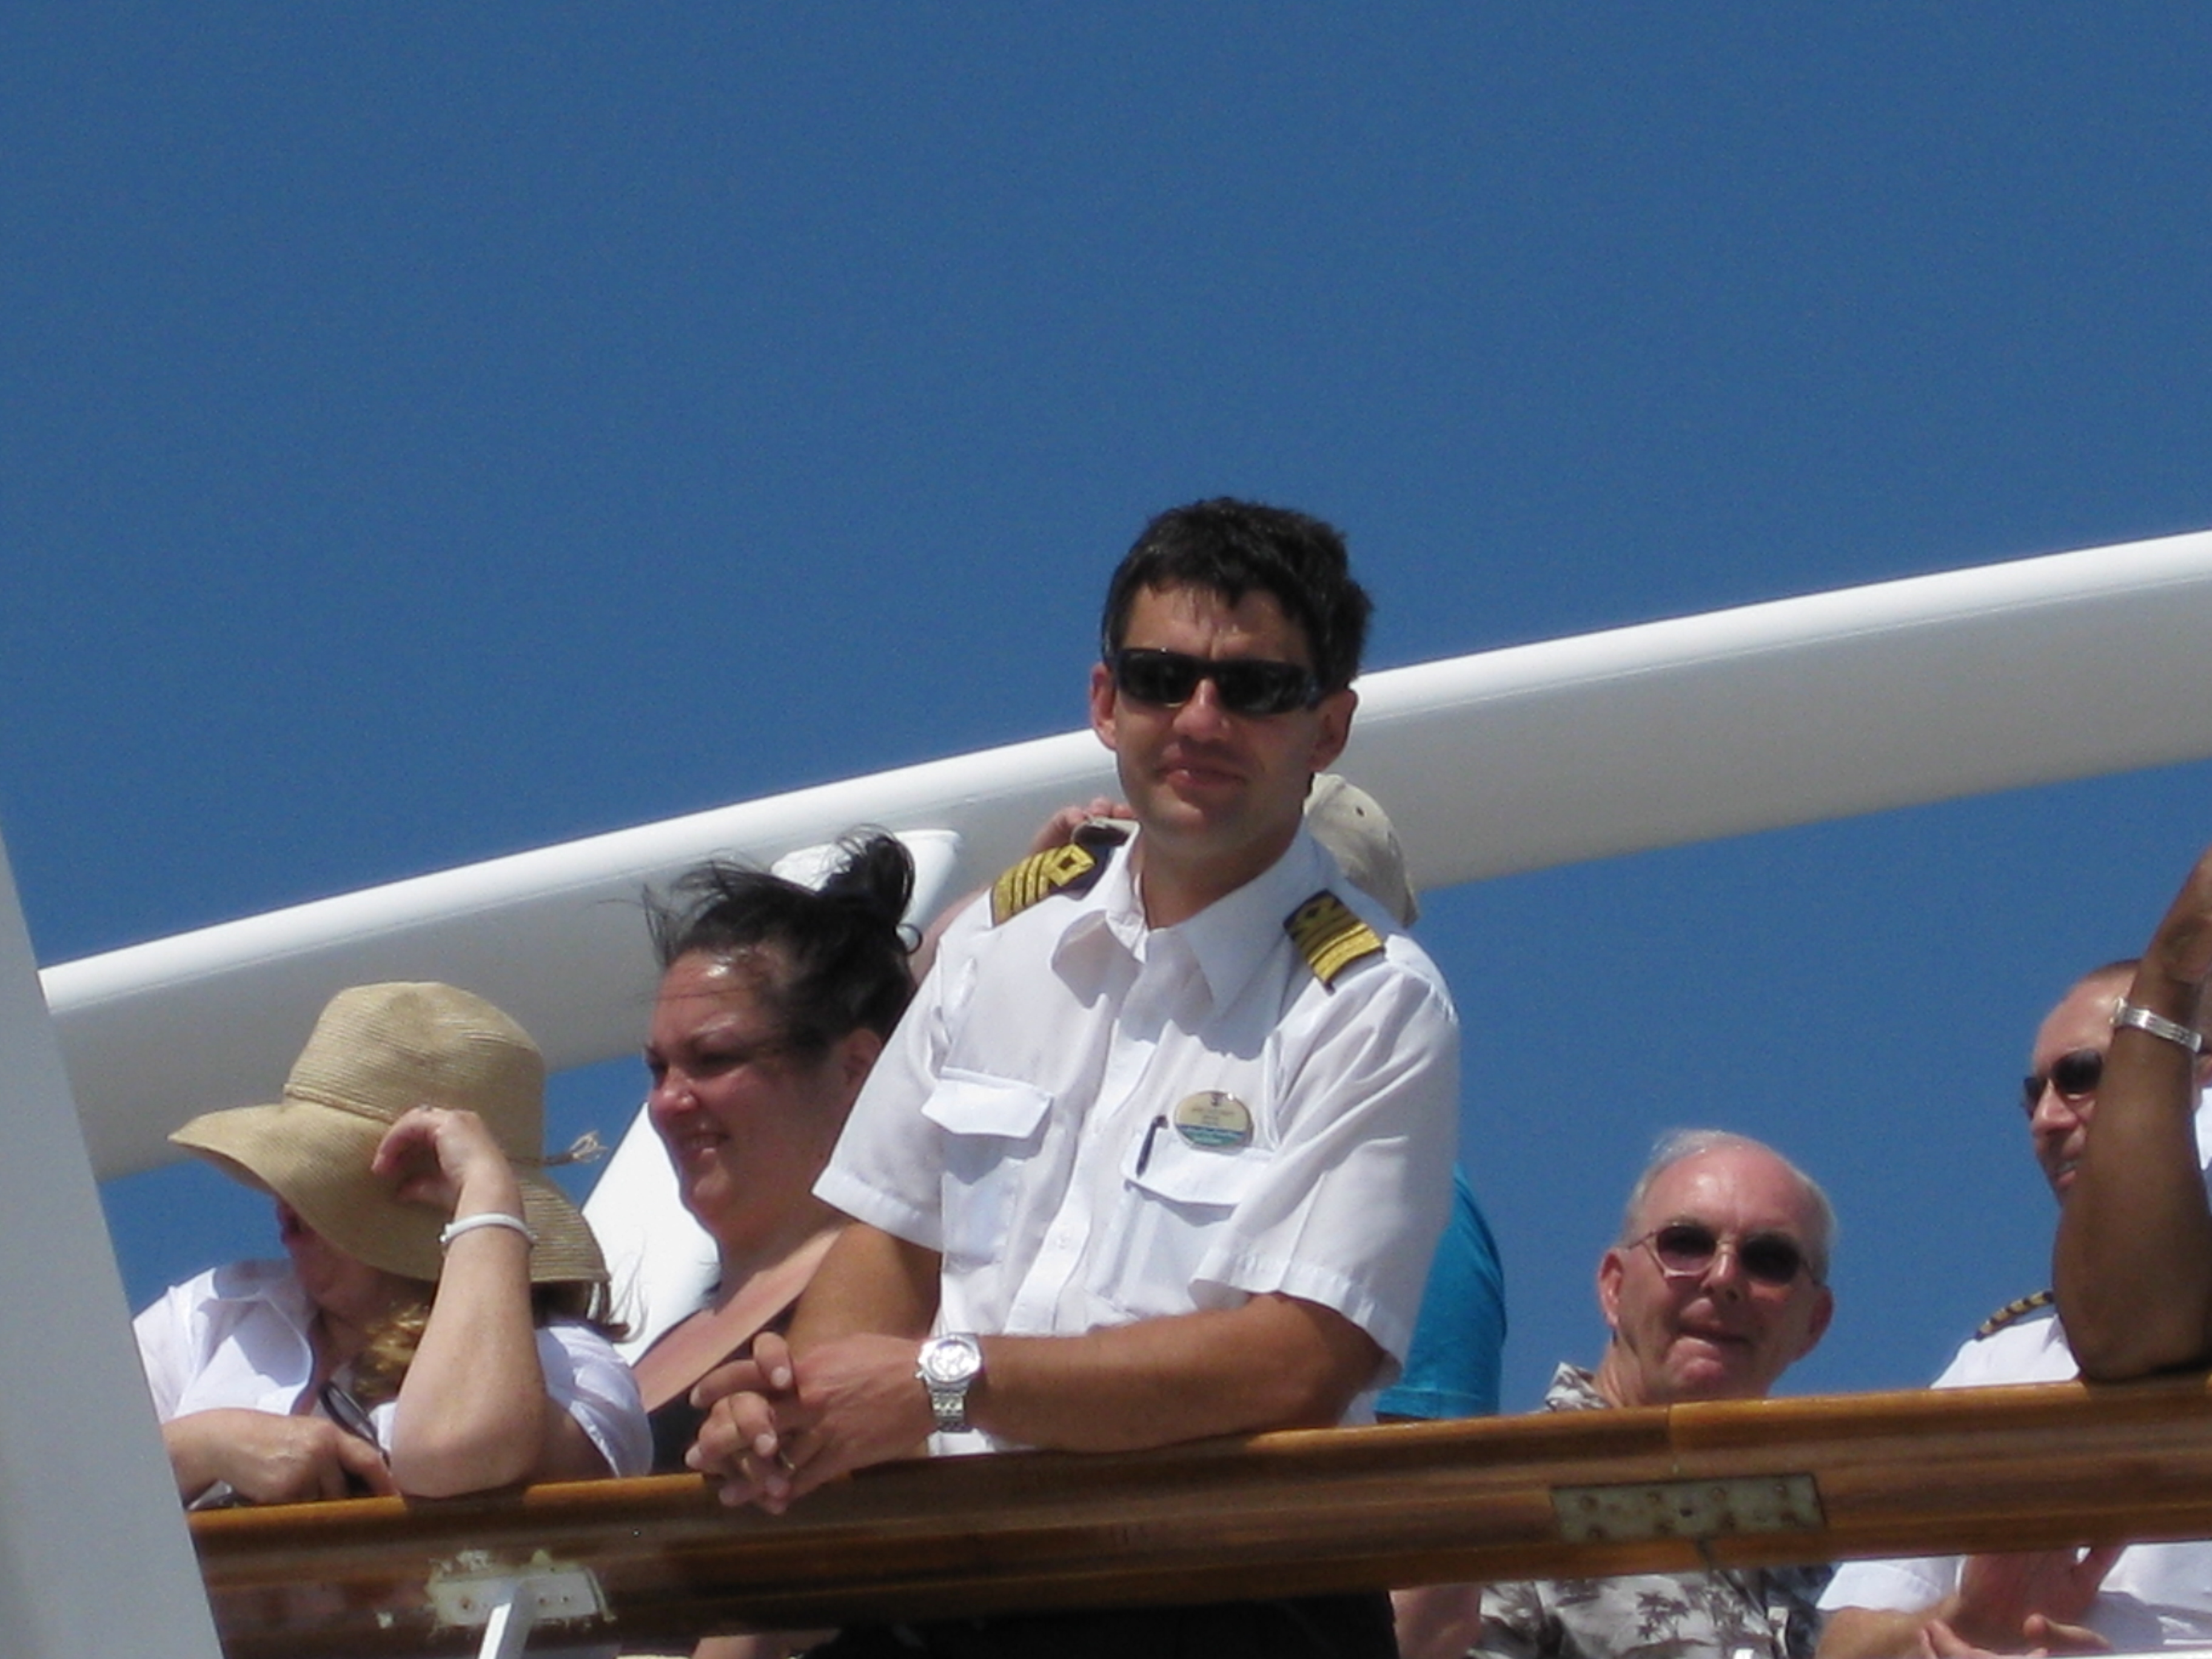 The Captain was the cutest Serbian sailor I'd ever met  lol